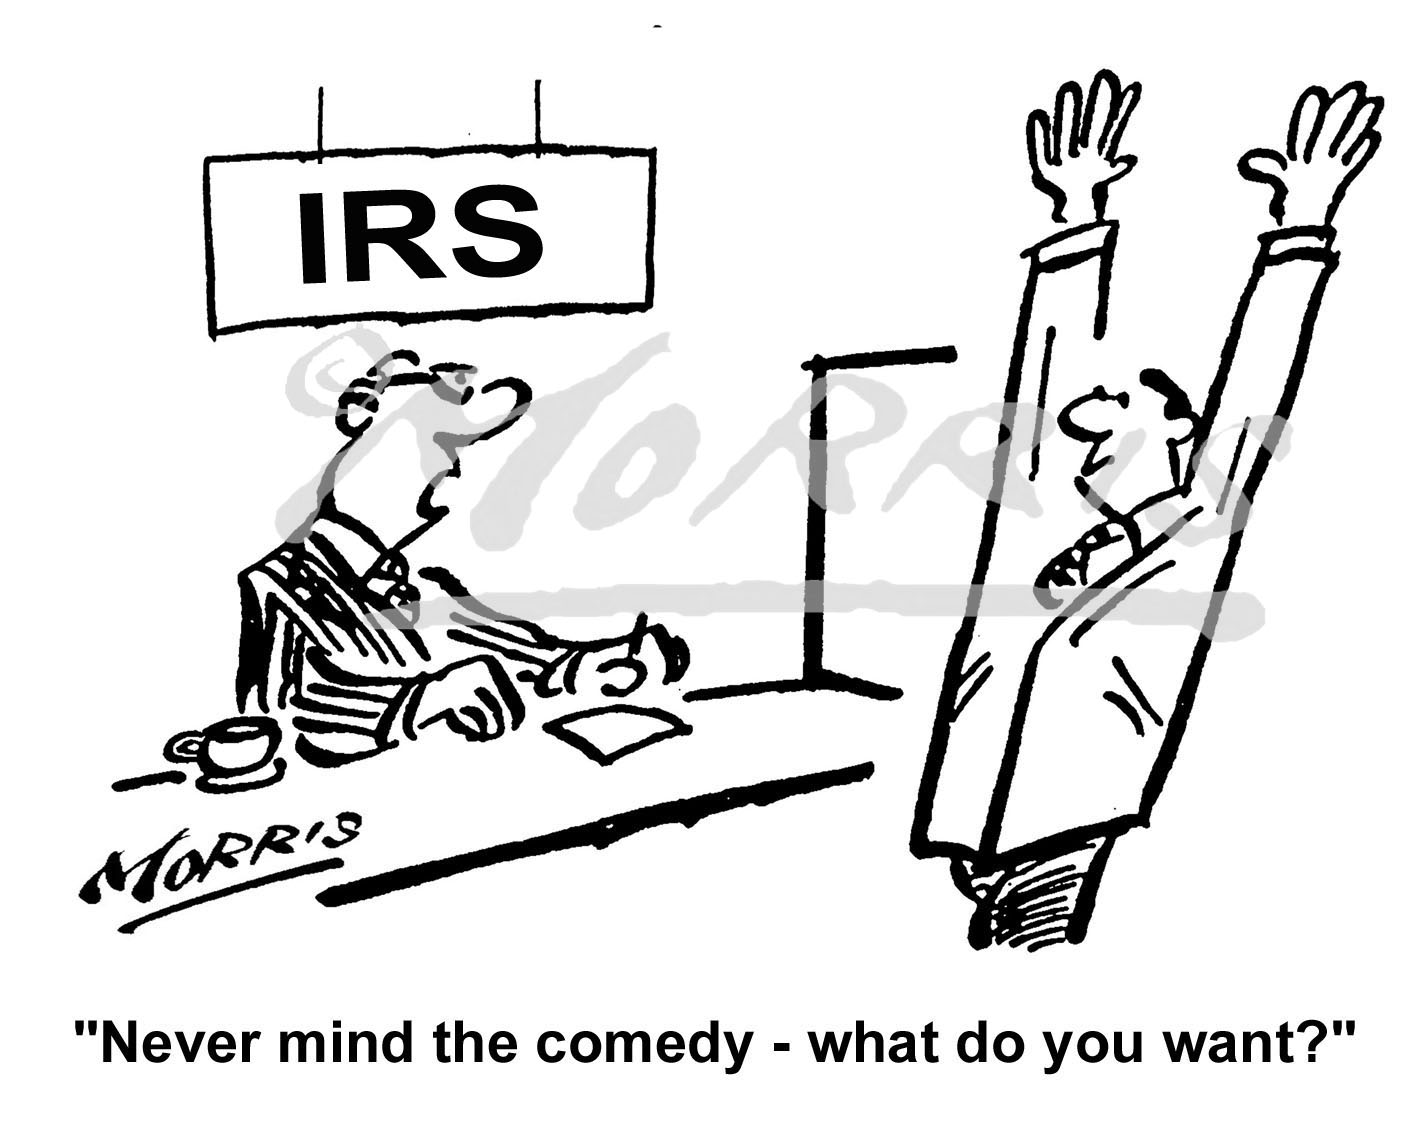 IRS cartoon – Ref: 0484bwus